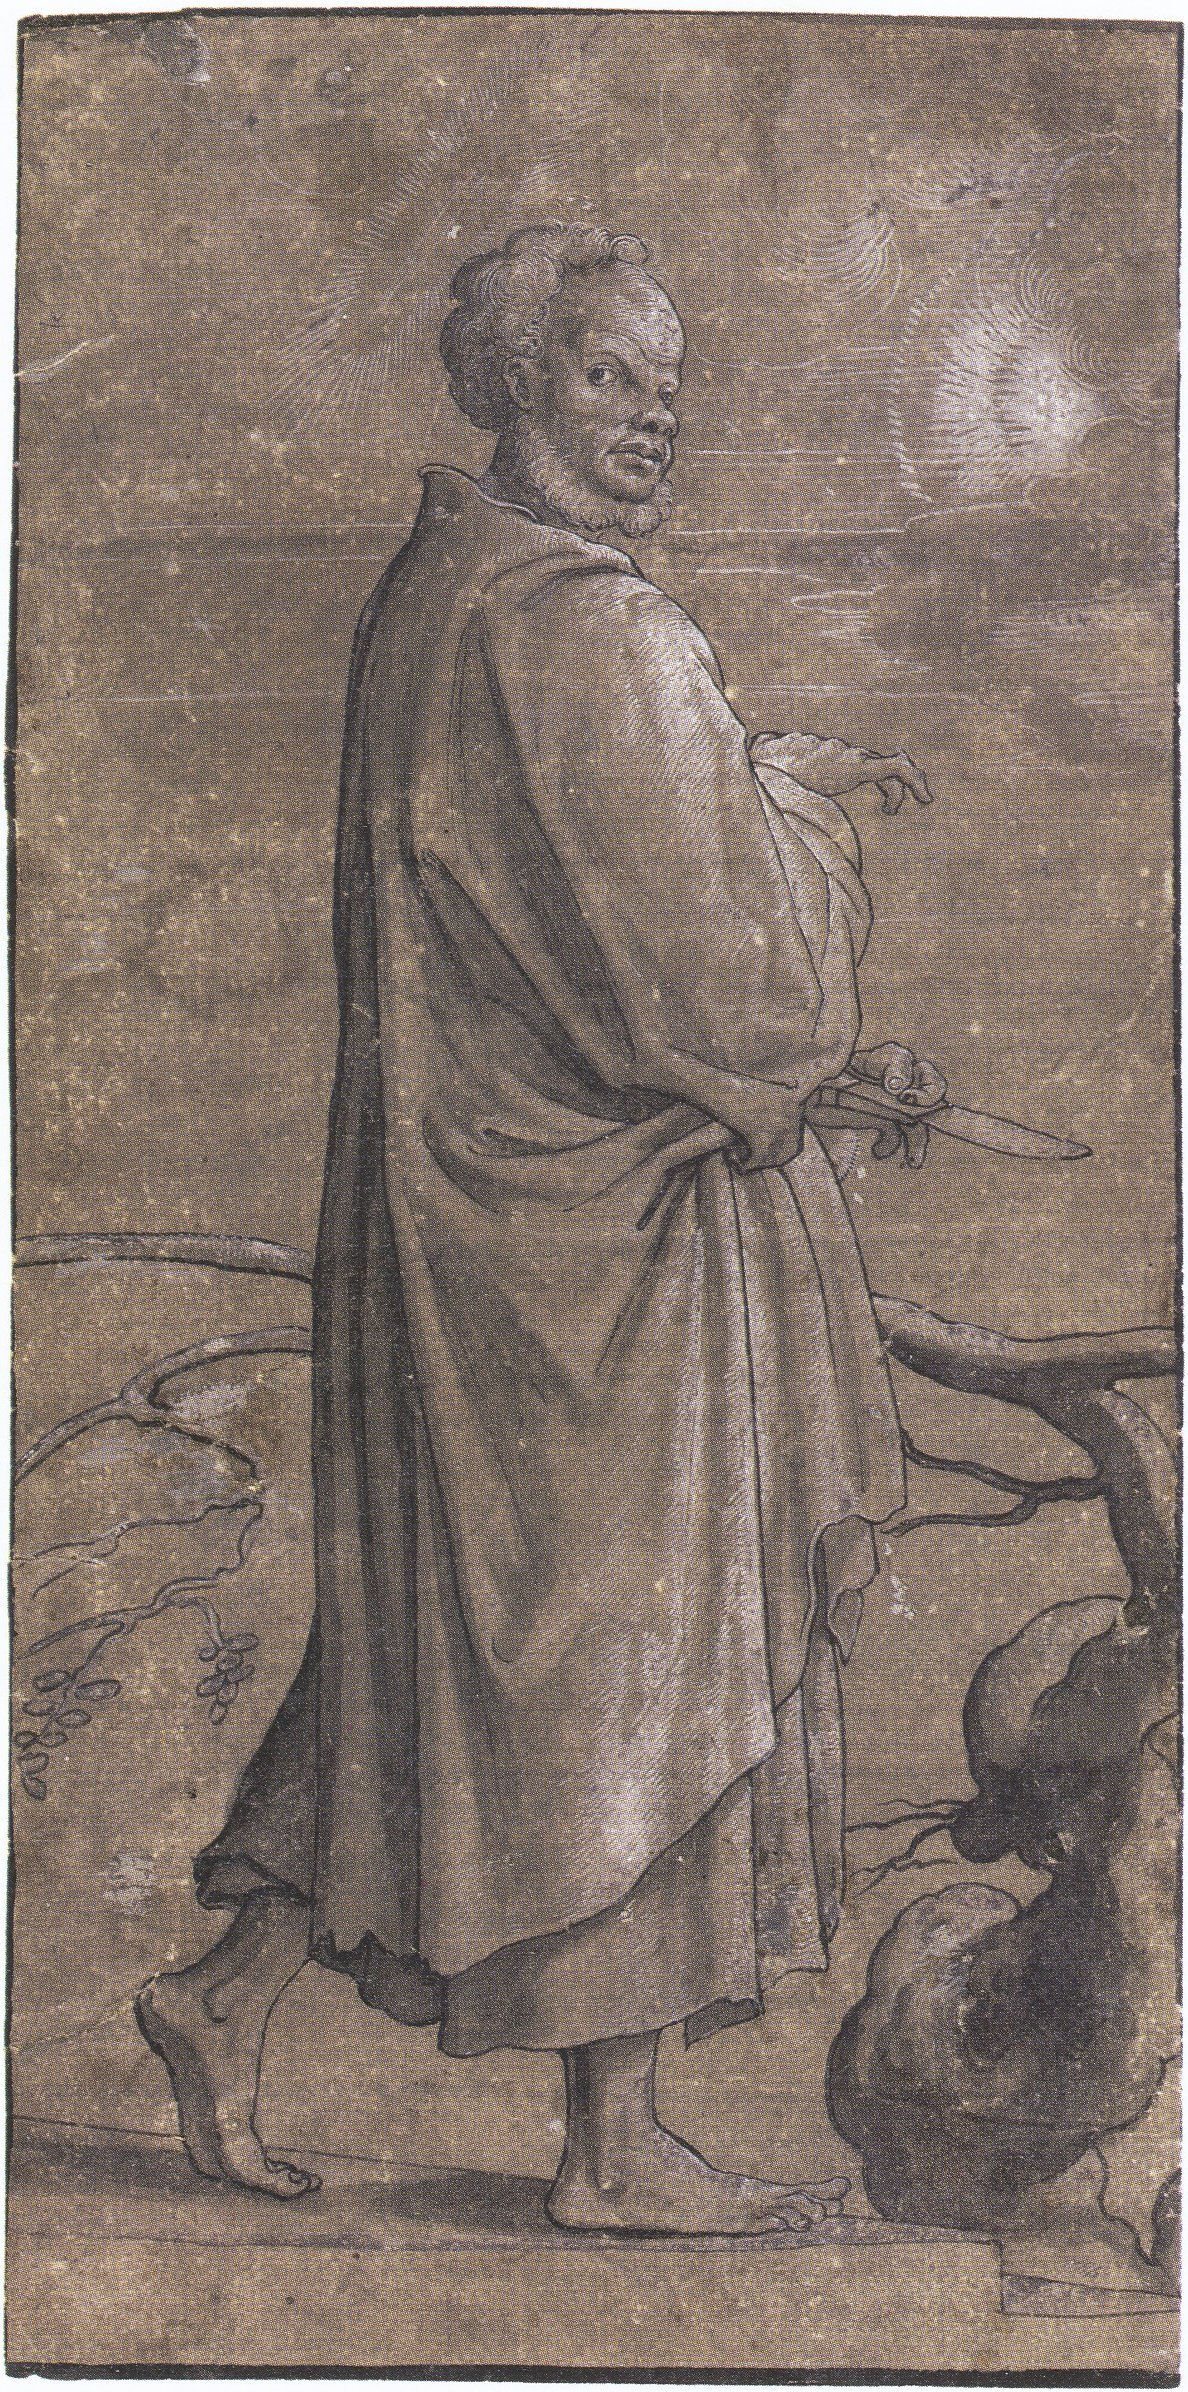 The Apostle Bartholemew, workshop or circle of Hans Holbein the Younger. c.1527